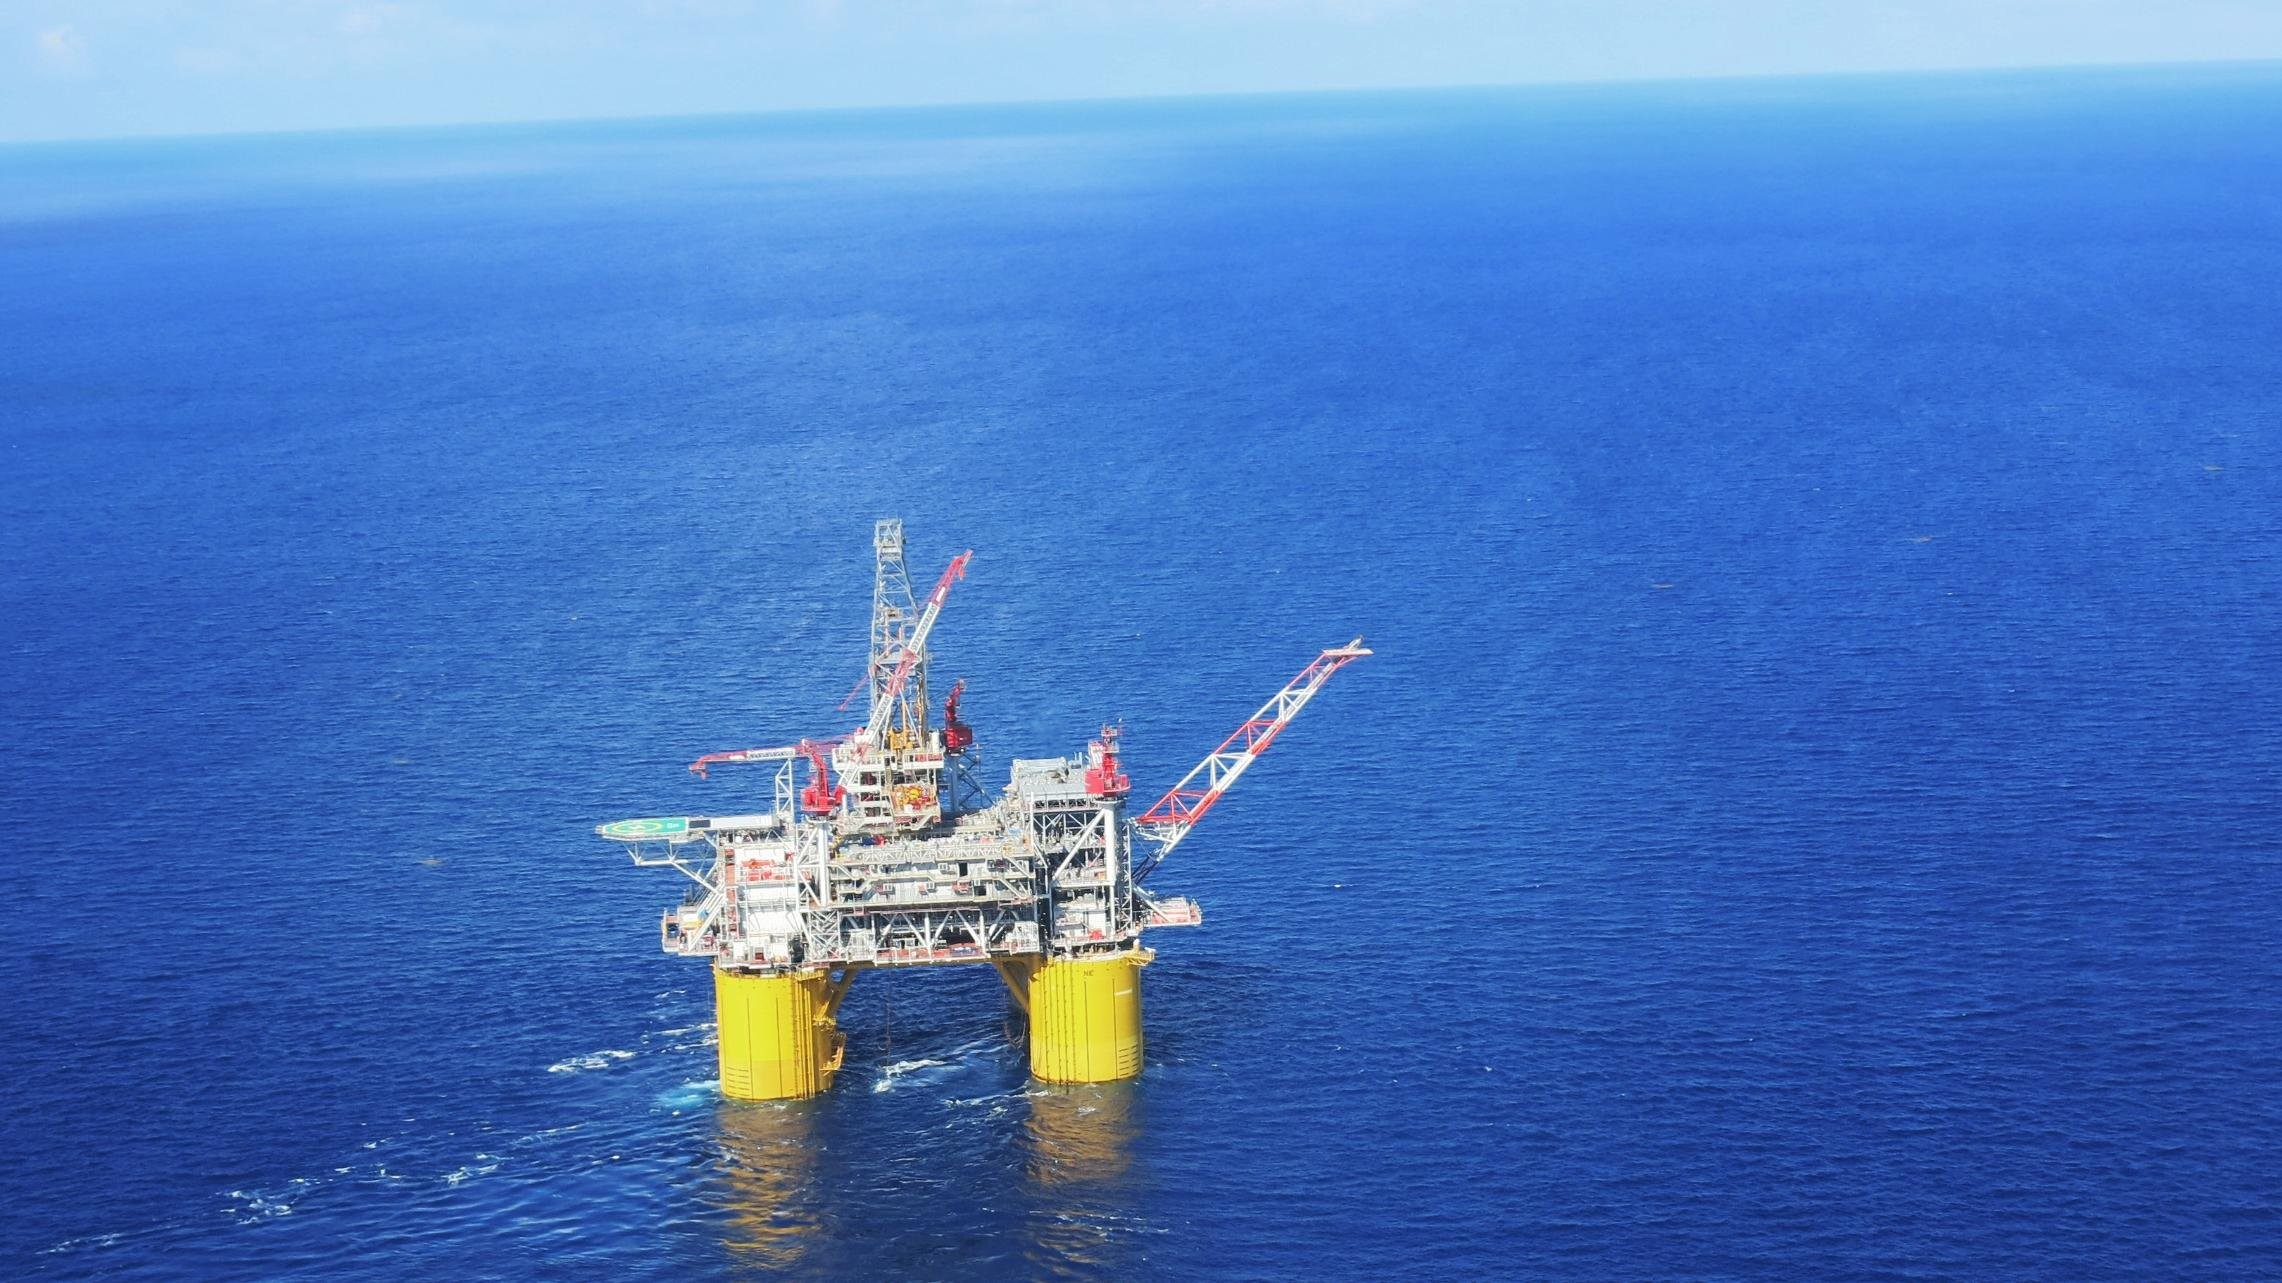 2282x1283 OIL GAS RIG platform ocean sea ship boat 1orig wallpaper |  |  847487 | WallpaperUP